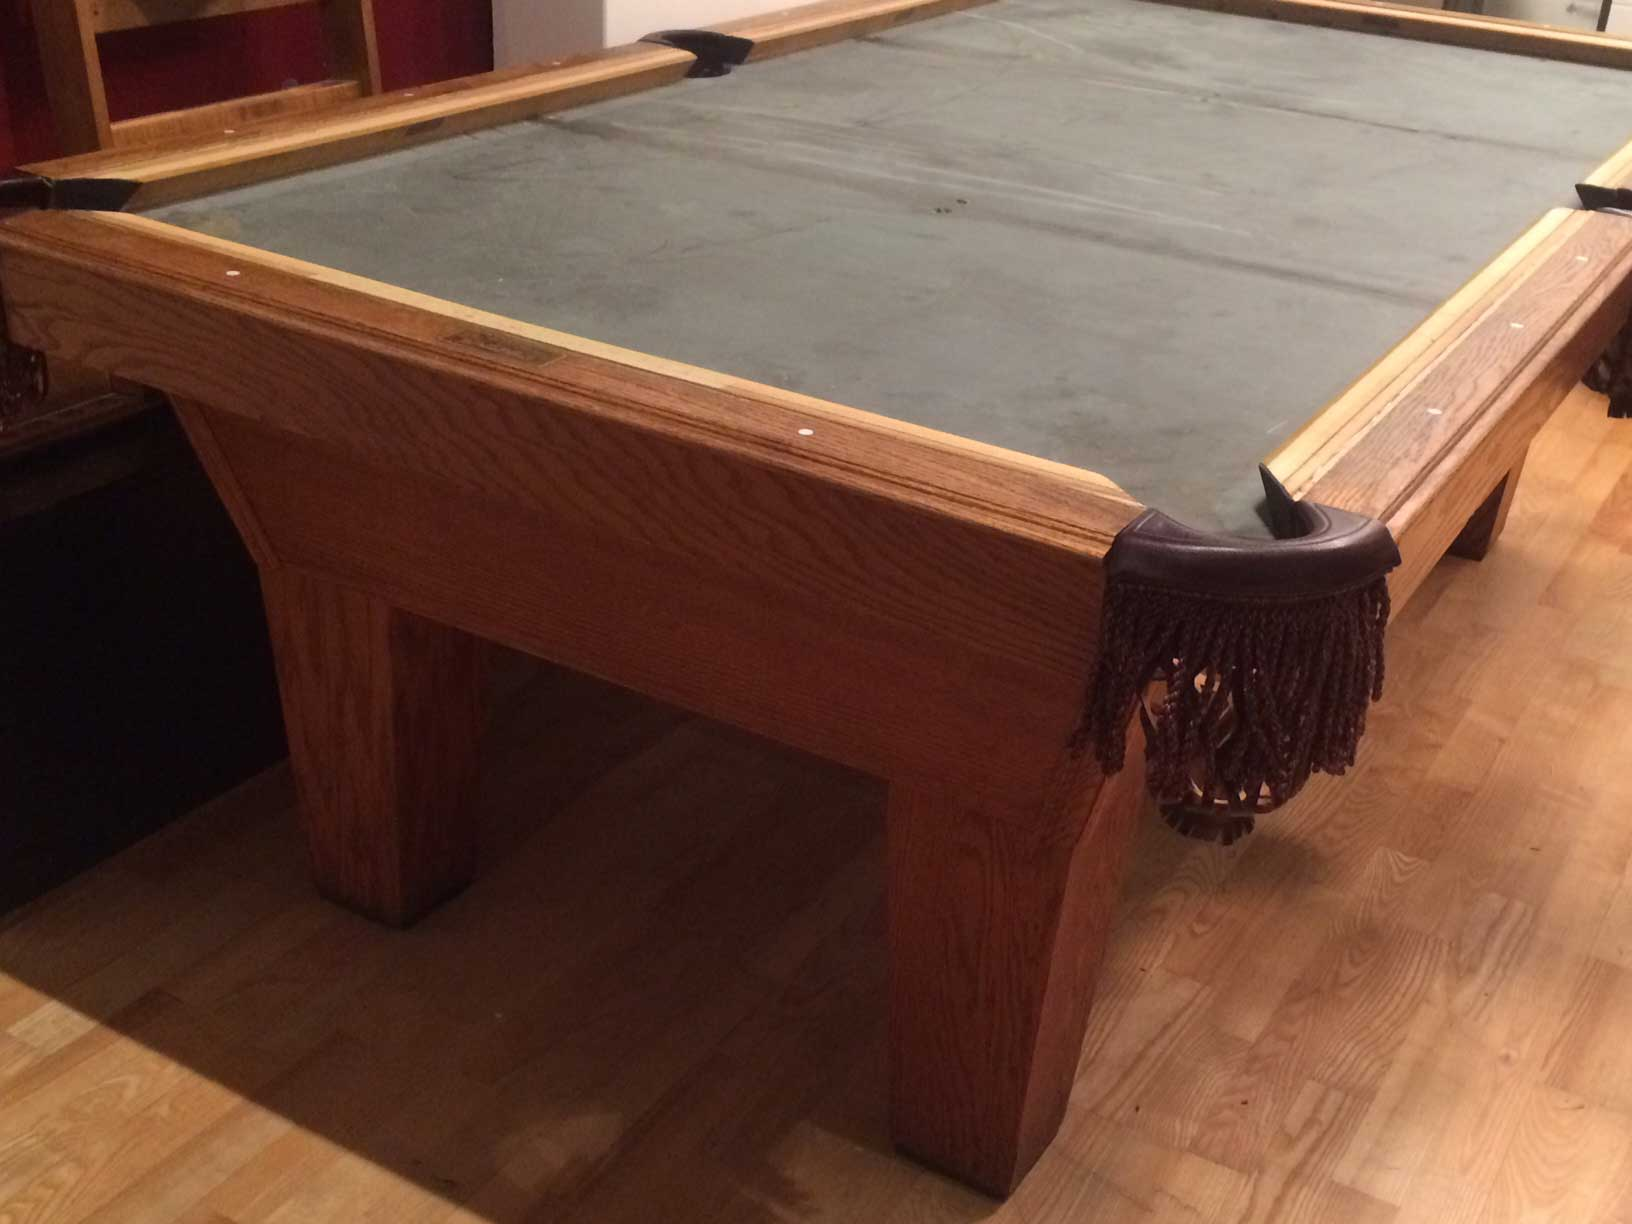 pool tables sale accesskeyid table olhausen alloworigin refurbished rams leg for disposition head